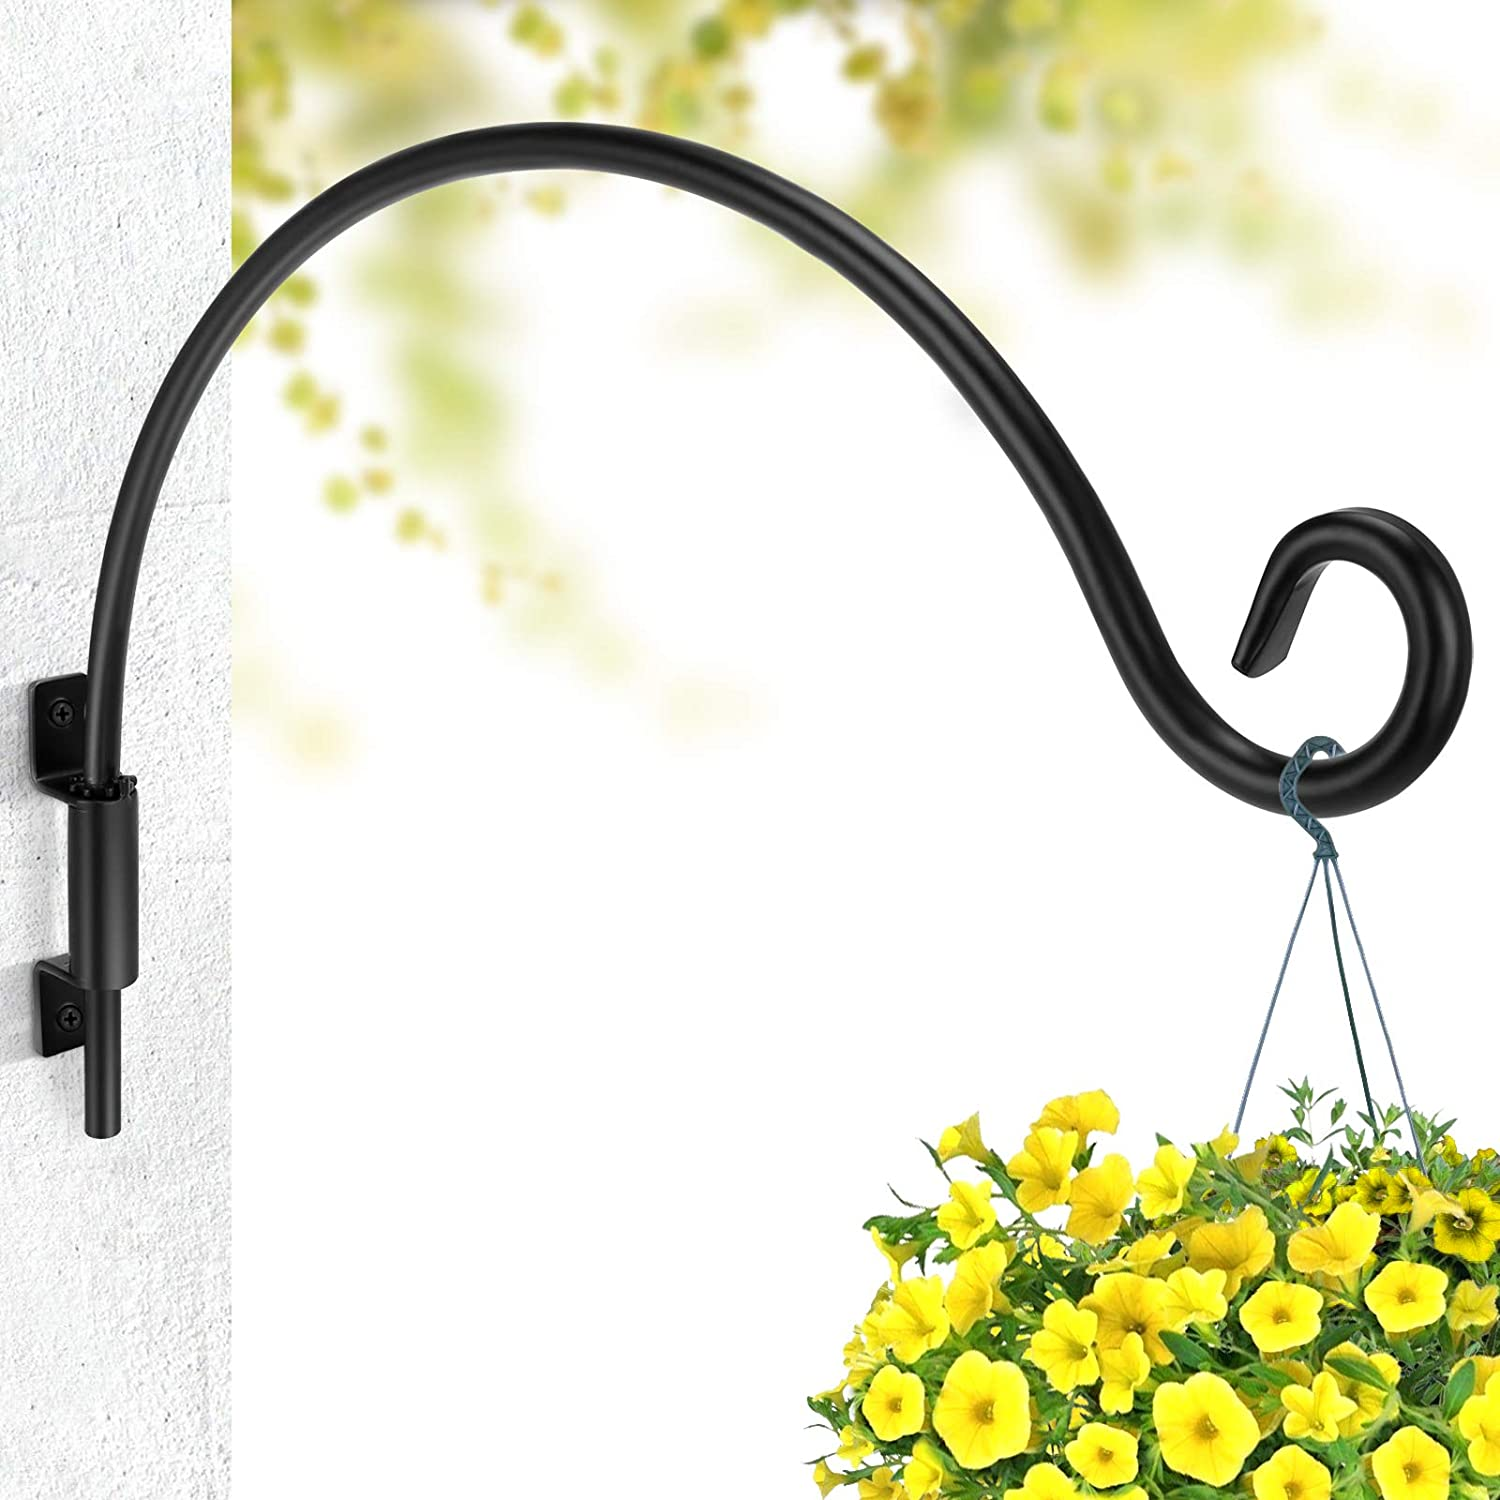 Plant Hook for Hanging Basket (12 inches-Black) Swivel Metal Hook for Hanging Plant or Bird feeders Wall Bracket Hook